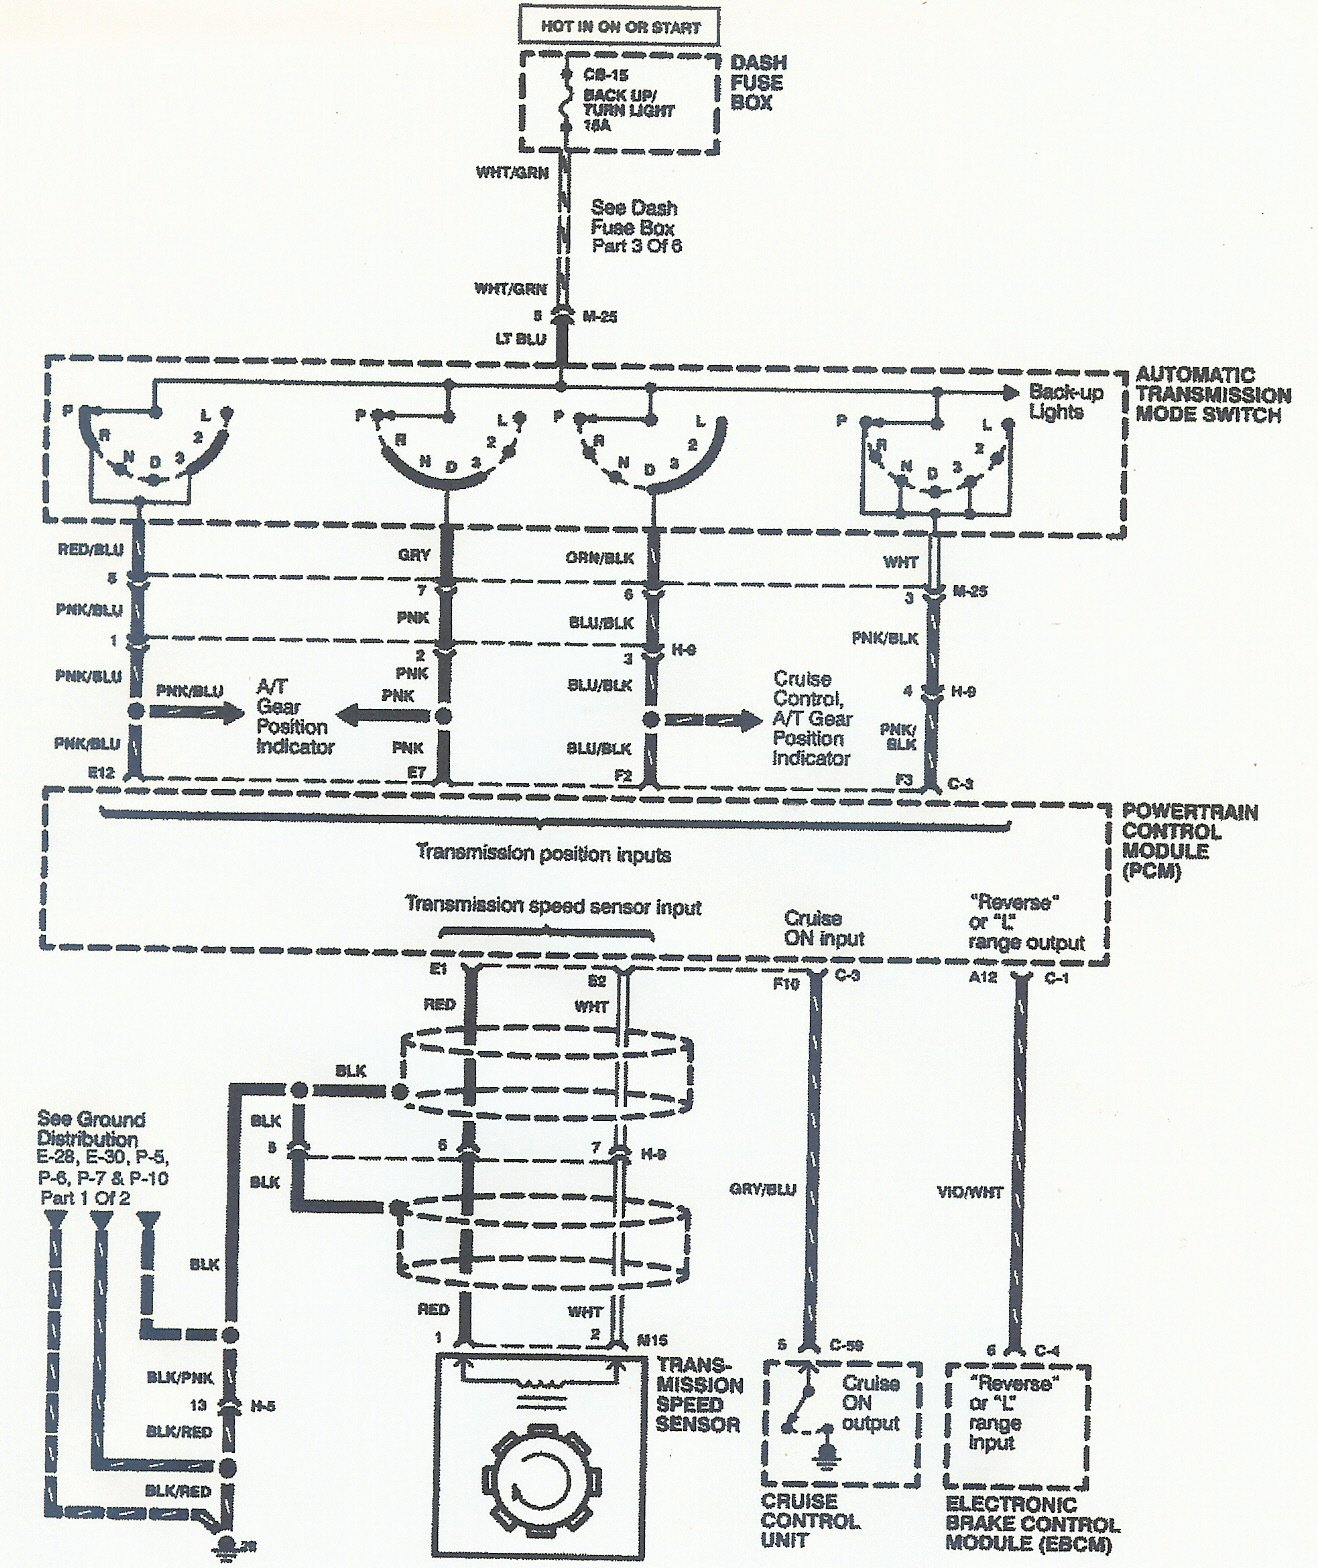 700R4 Transmission Speed Sensor Wiring Diagram from f01.justanswer.com